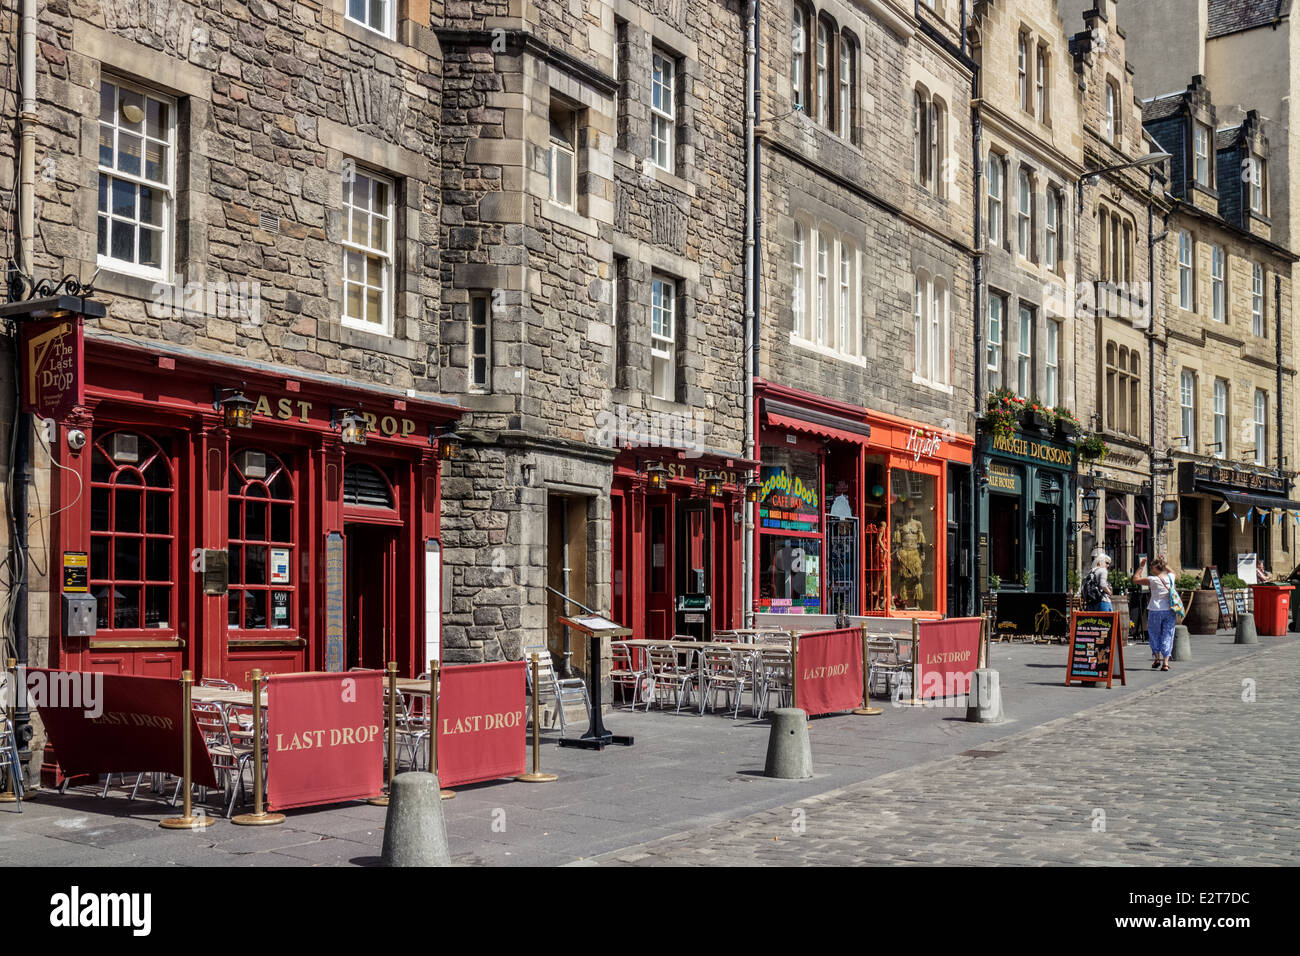 Pubs and shops of the Grassmarket Edinburgh - Stock Image